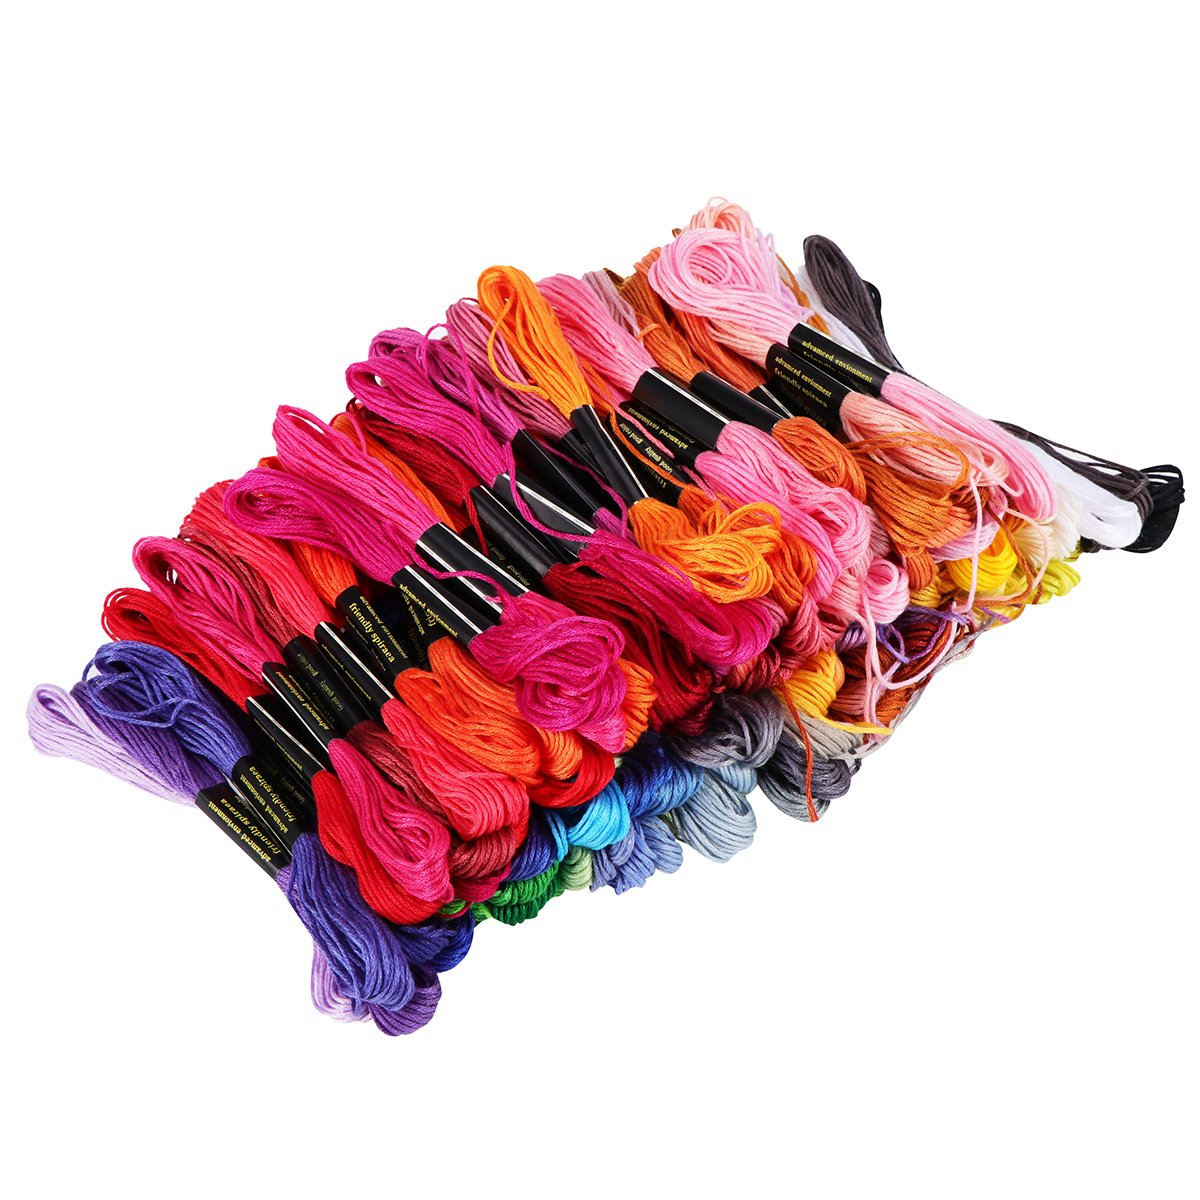 Tinksky 100 Skeins of 8M Multi-color Soft Cotton Cross Stitch Embroidery Threads Floss Sewing Threads Random Color